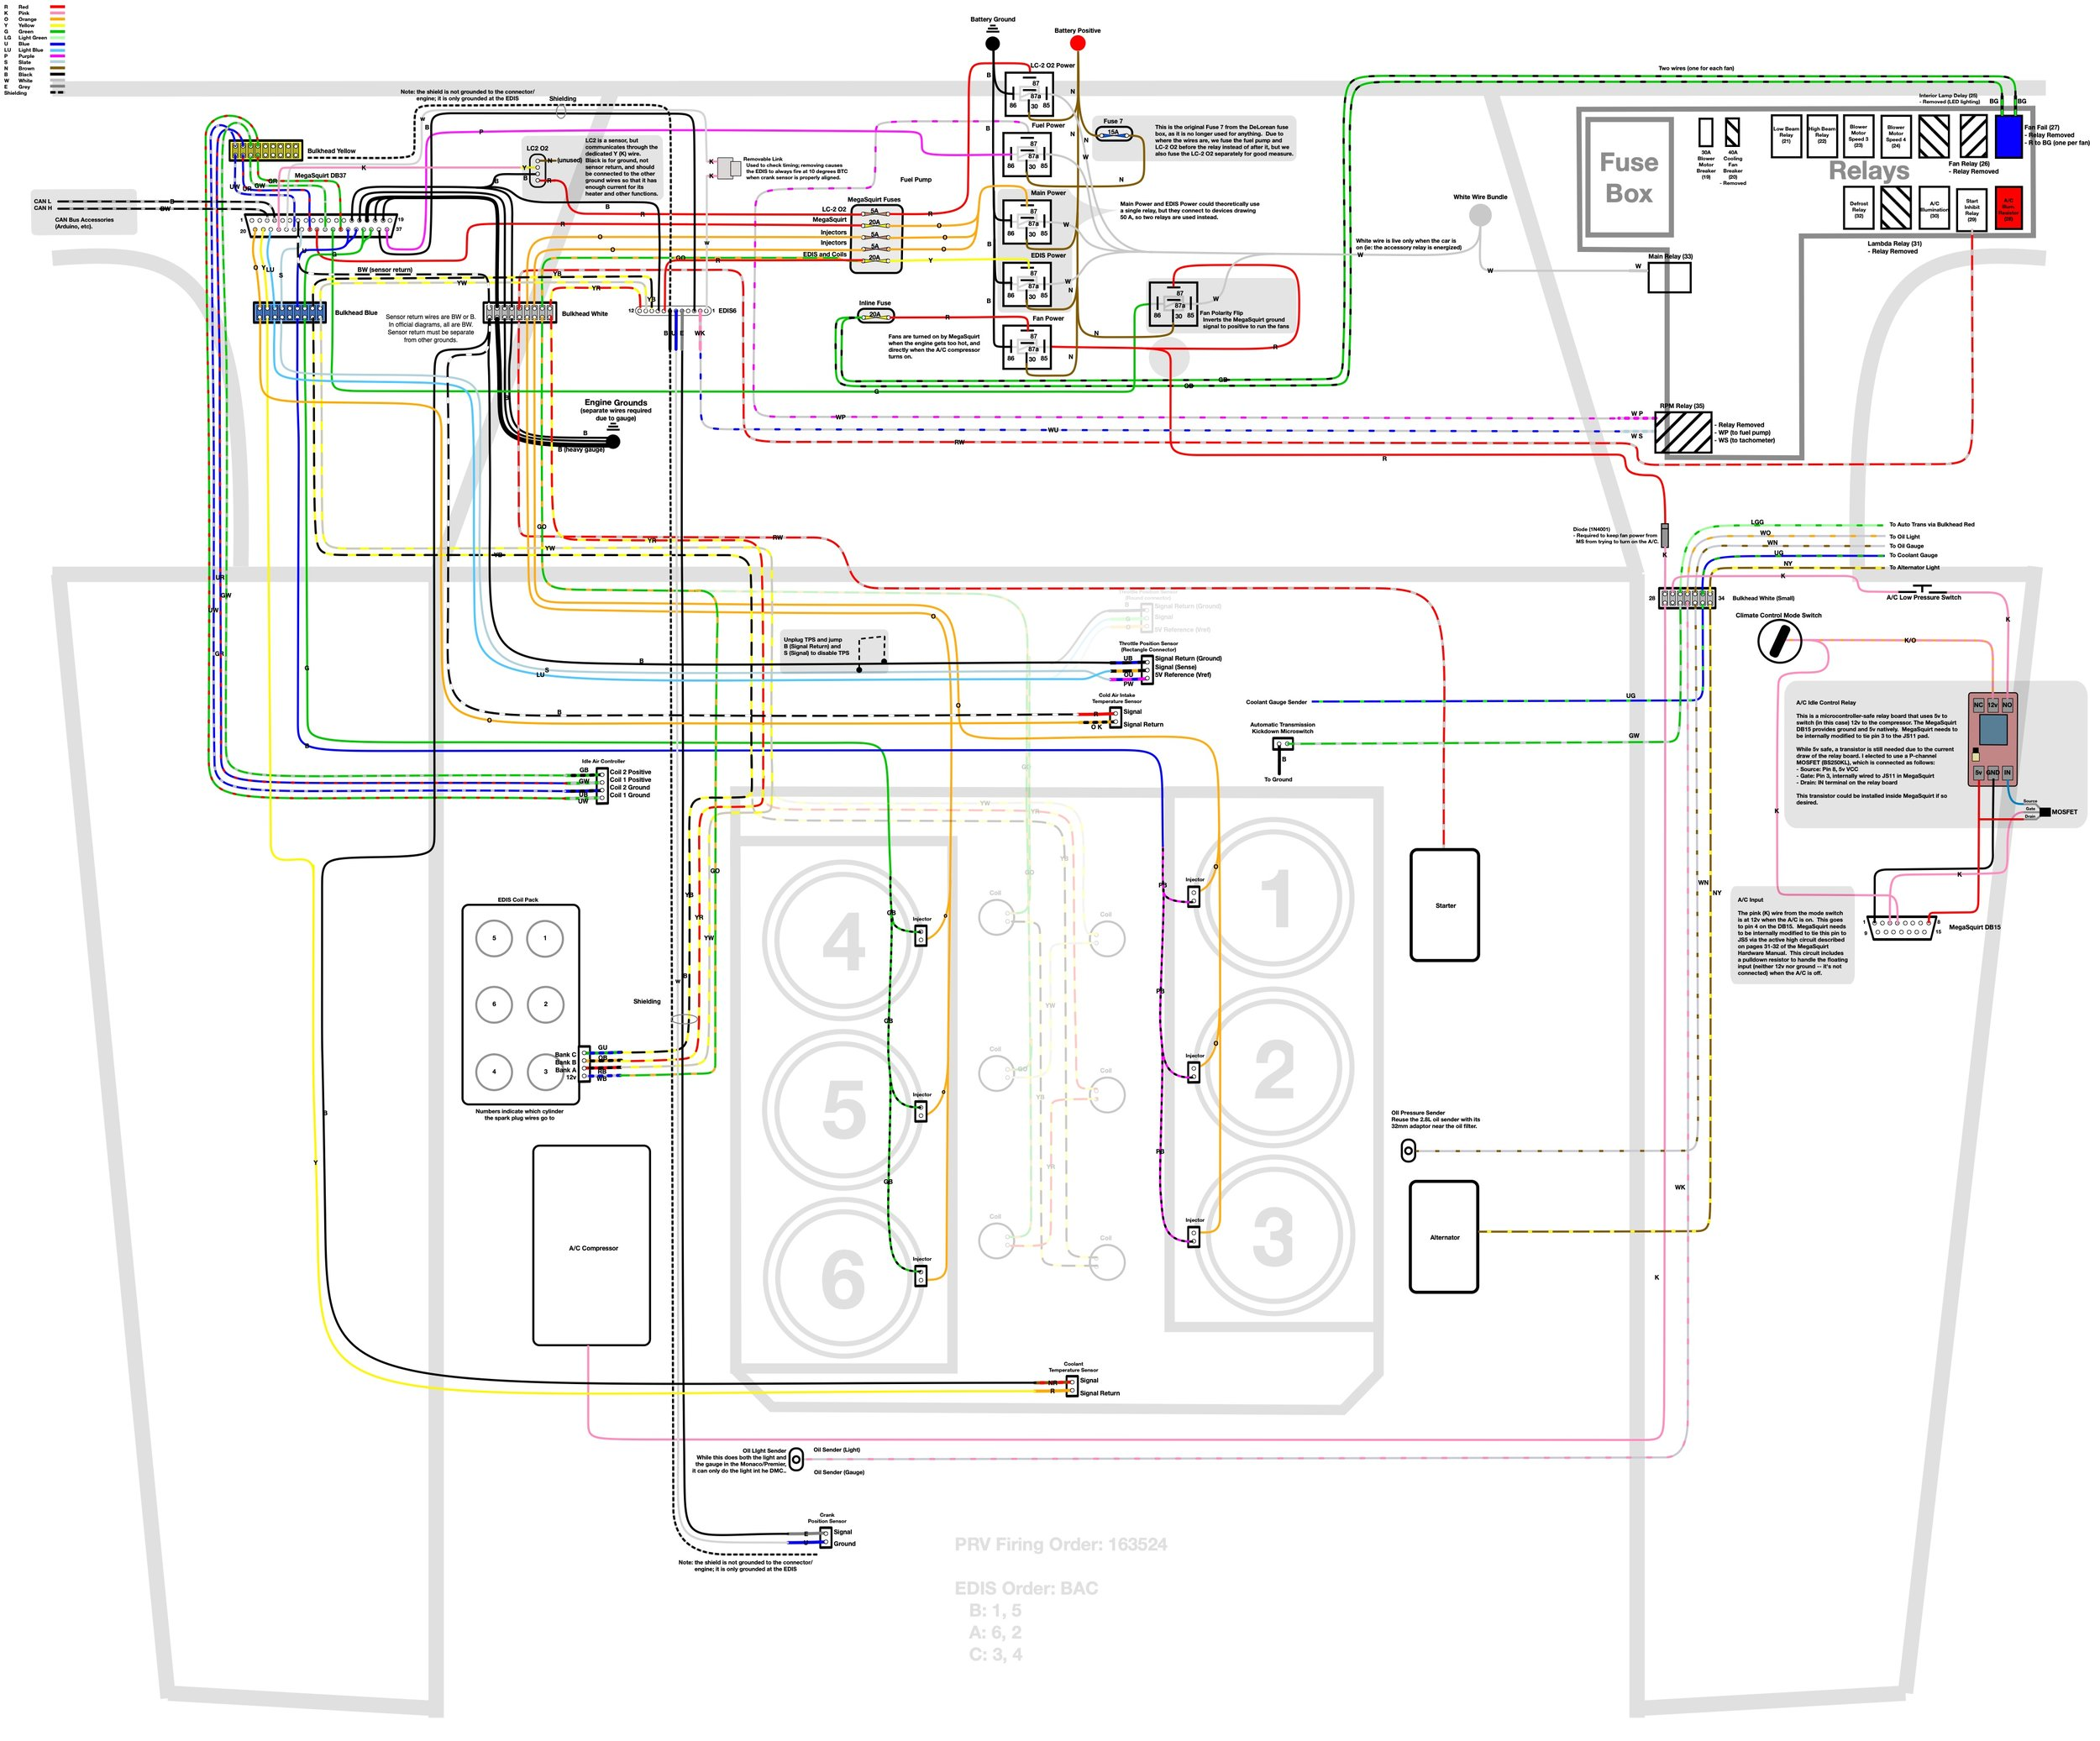 DeLorean+EFI+Wiring?format=1500w wiring, installing the new harness and fuel injector refurbishing delorean fuse box diagram at aneh.co